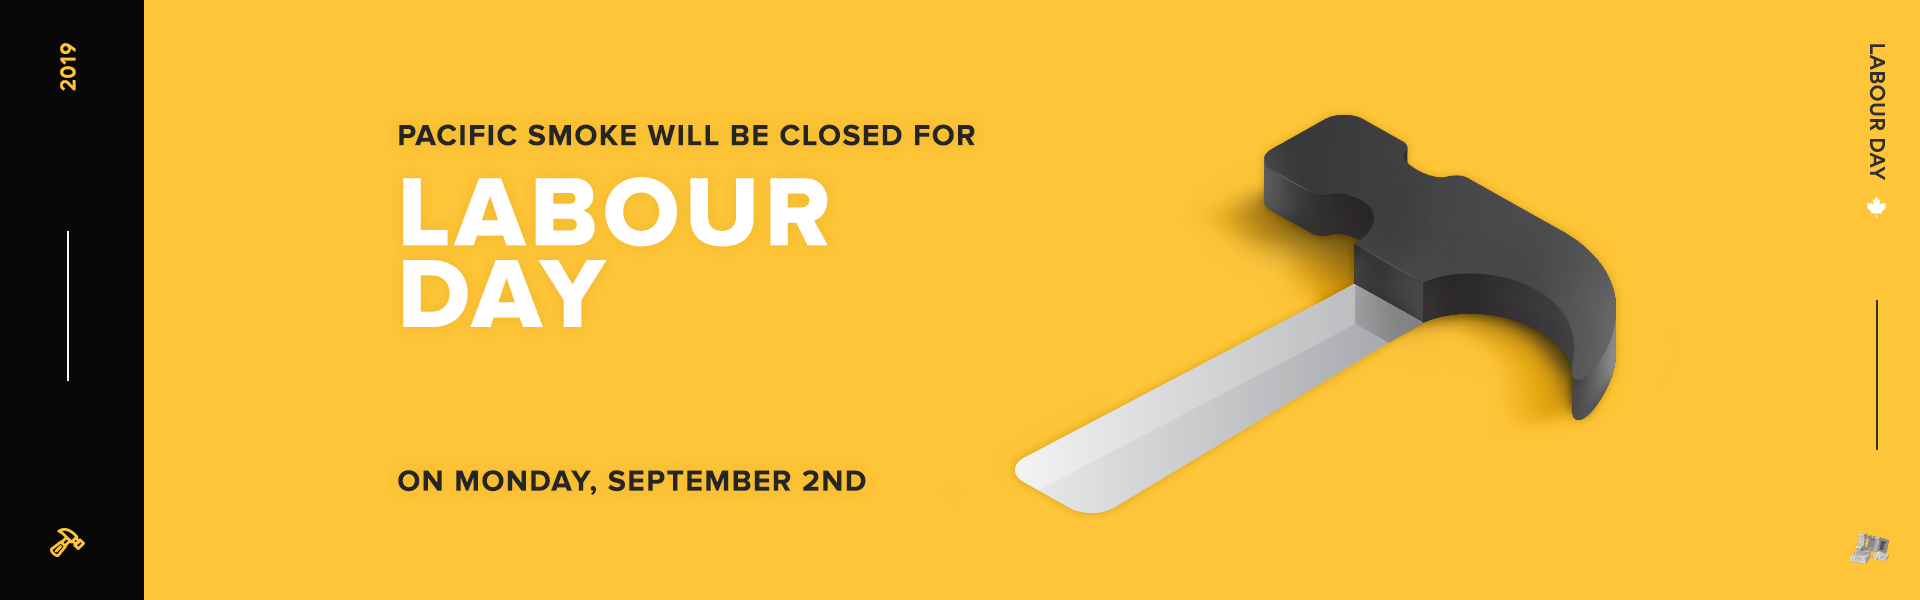 Pacific Smoke Will Be Closed for Labour Day on Monday September 2nd